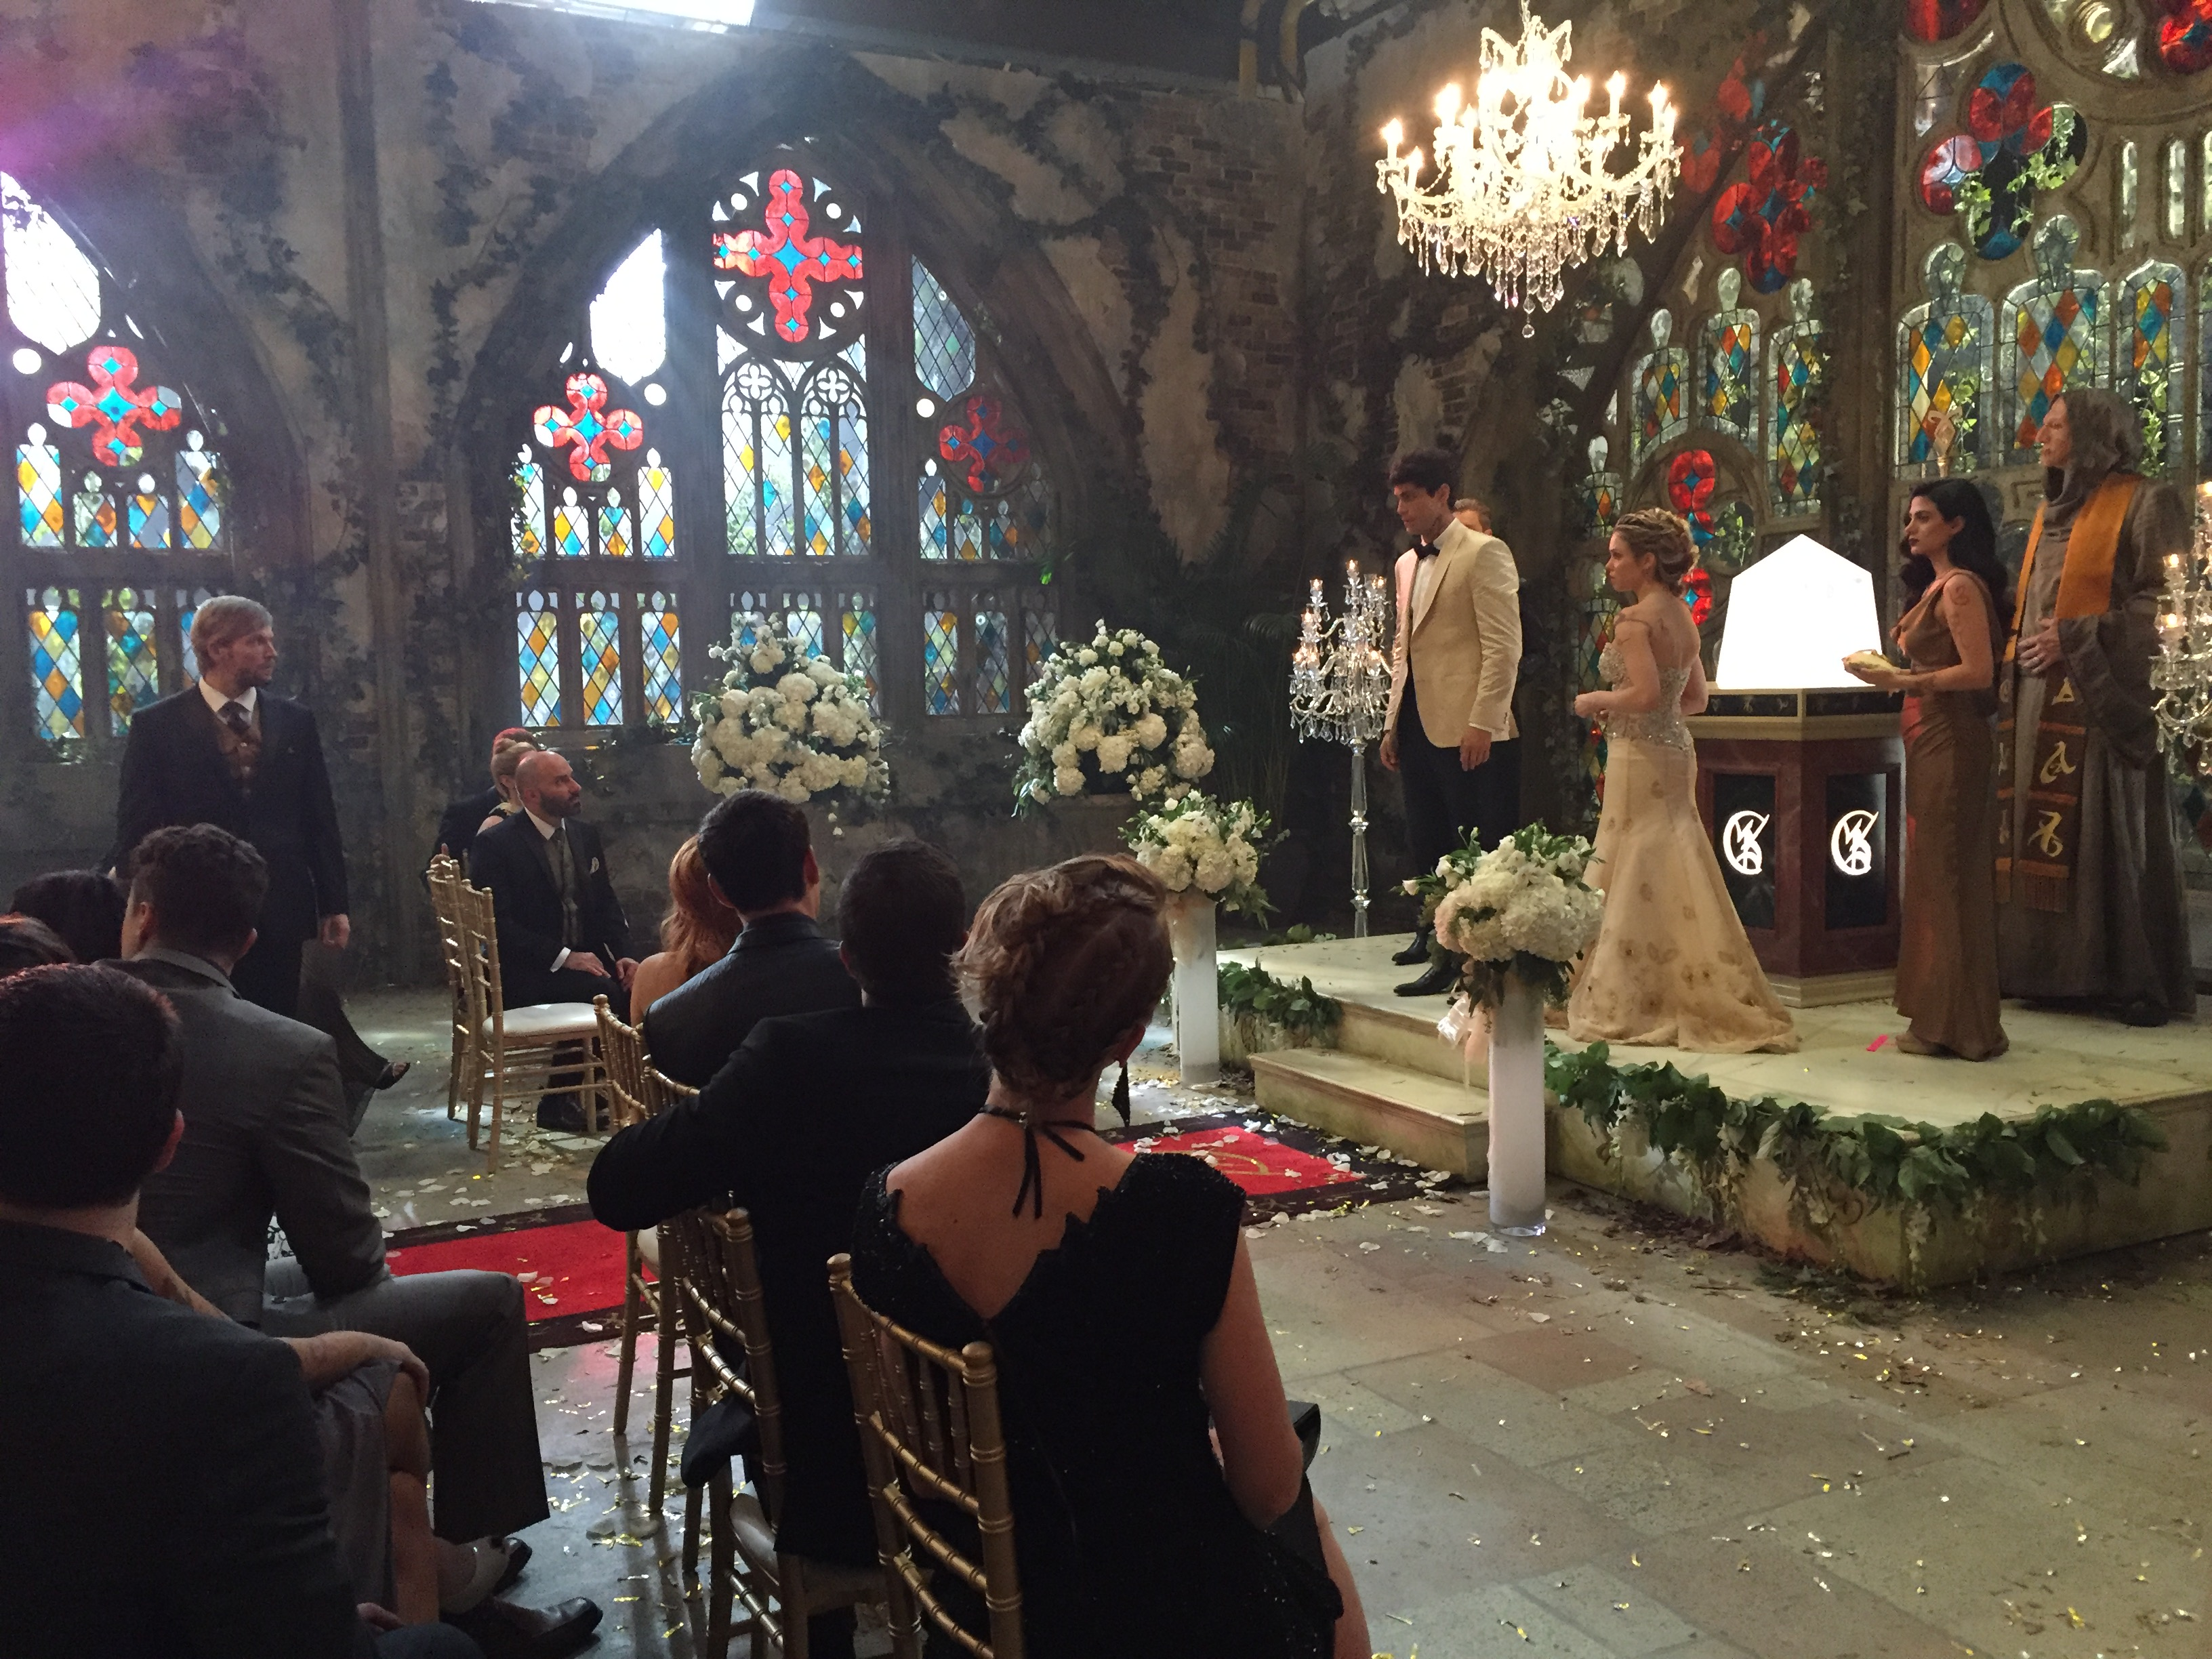 Shadowhunters - Amazing Behind The Scenes Pics From Episode 12's Wedding! - 1001